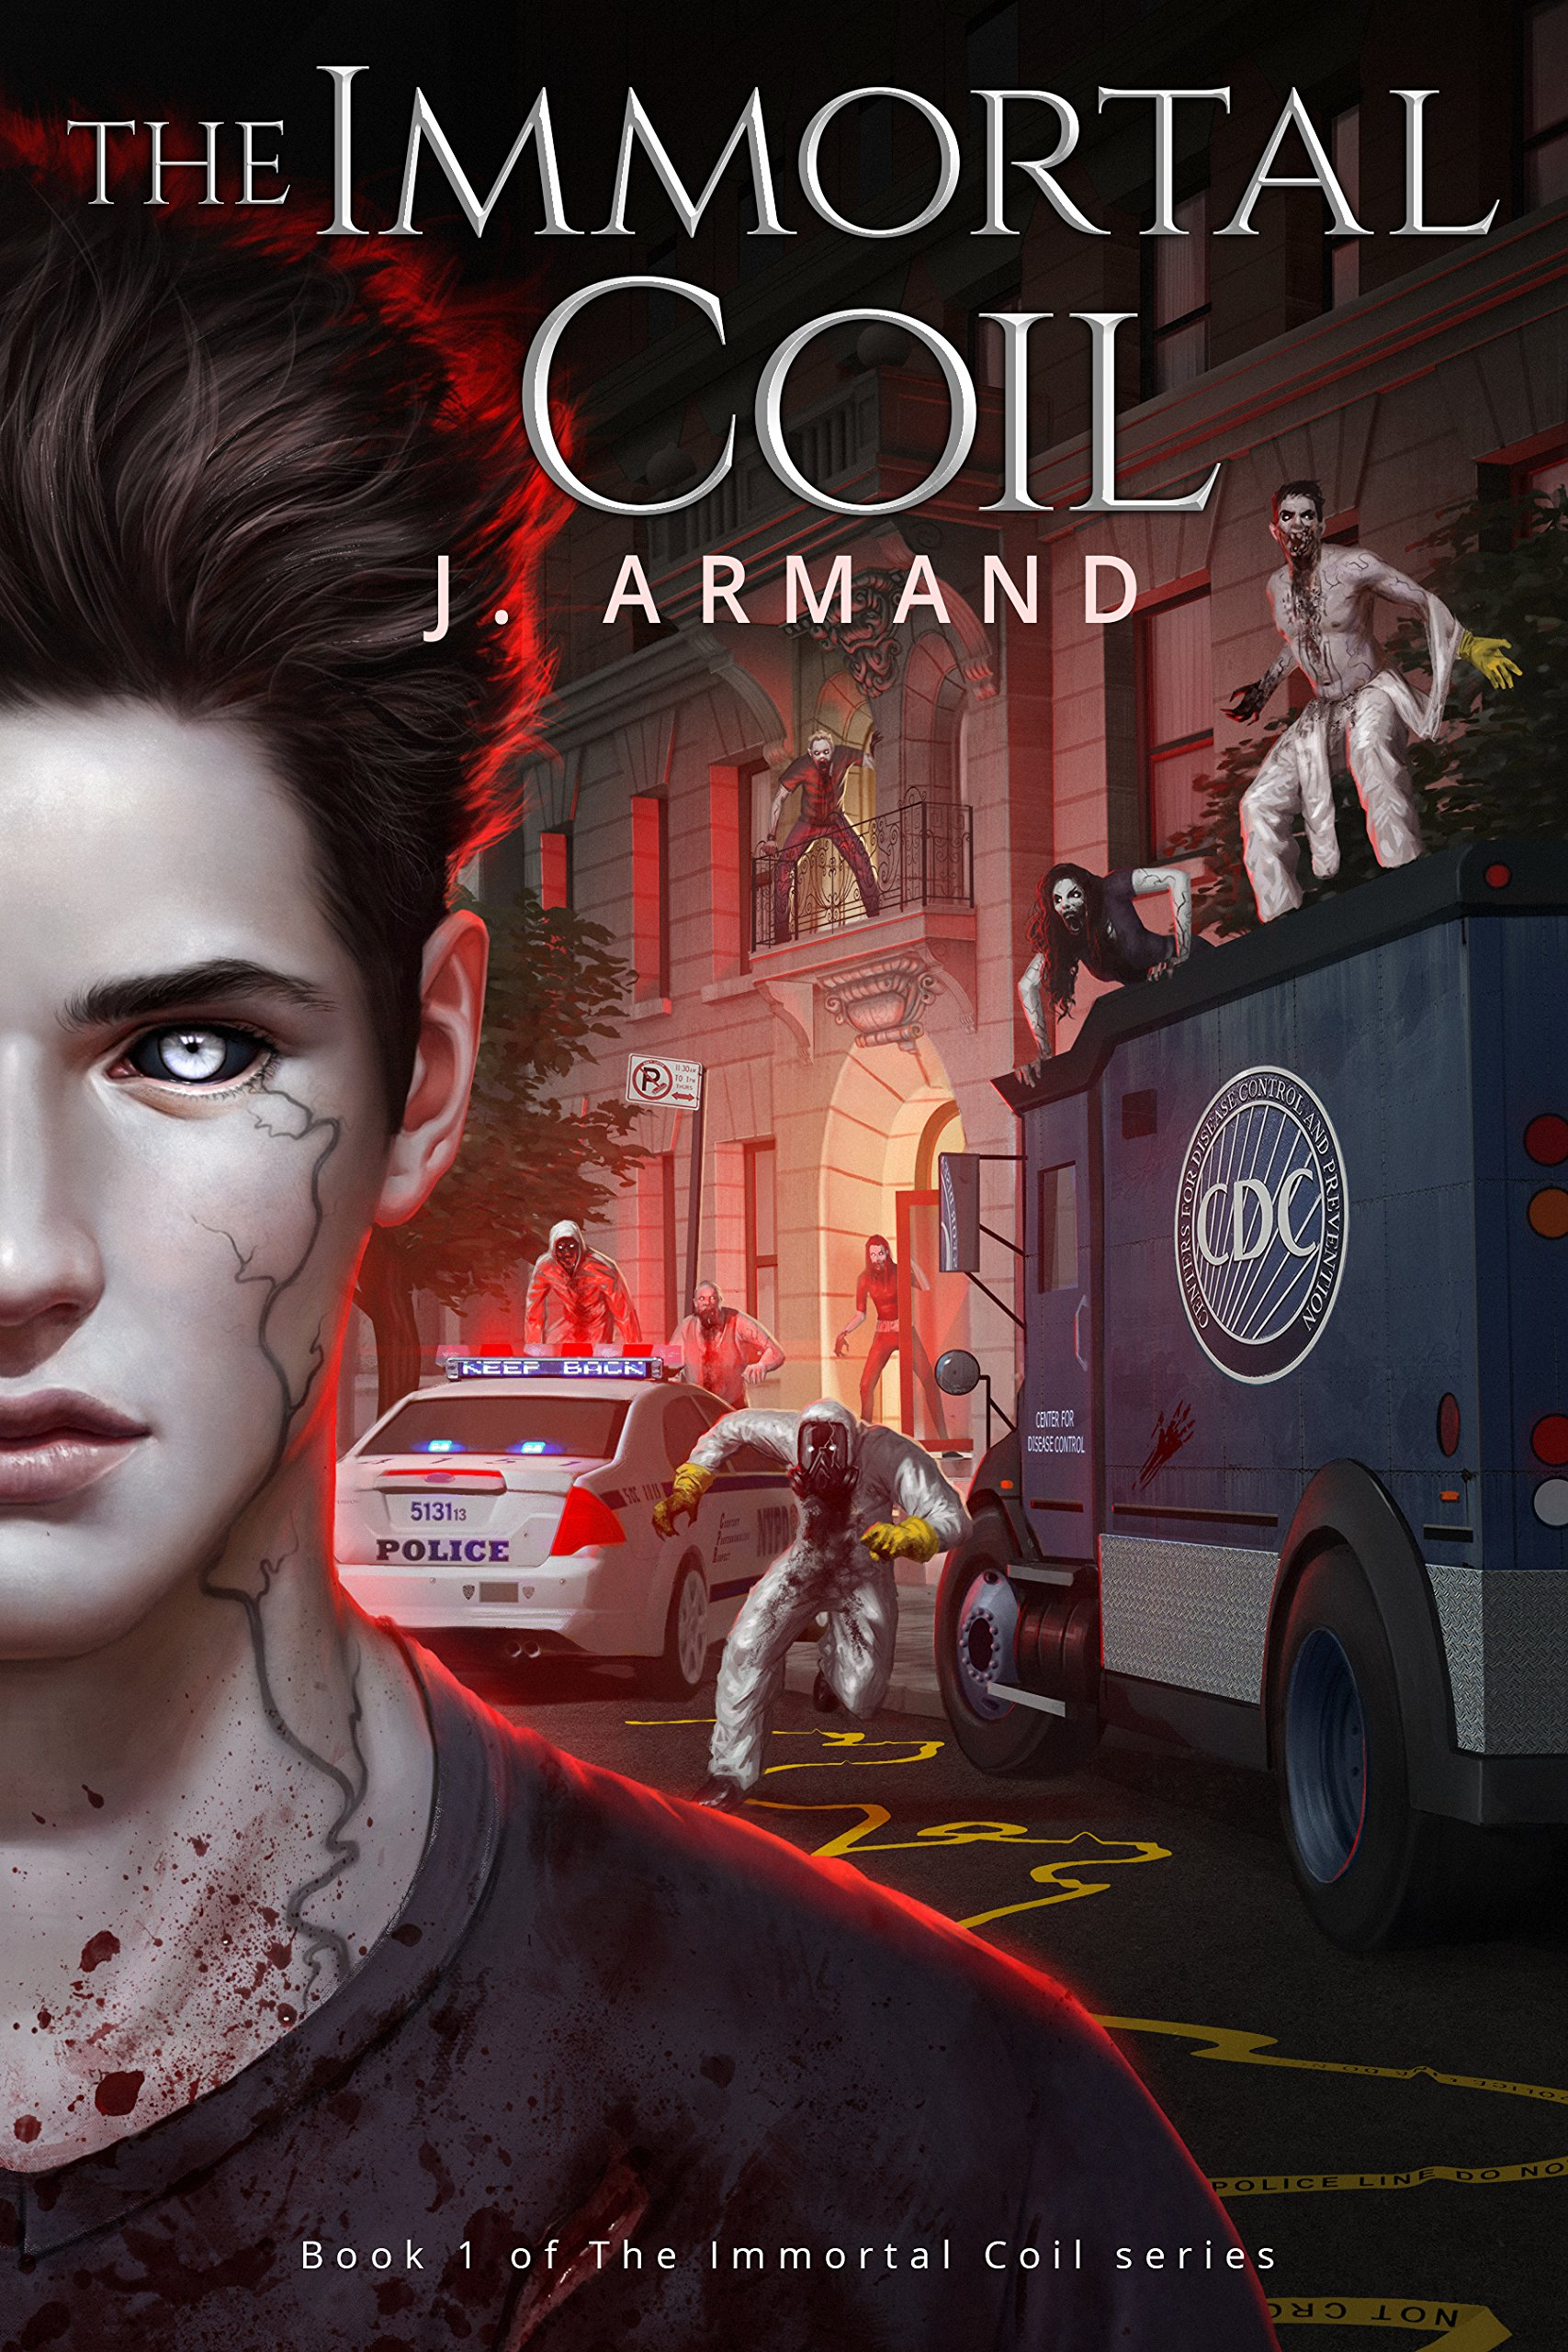 The Immortal Coil by J. Armand | reading, books, book covers, cover love